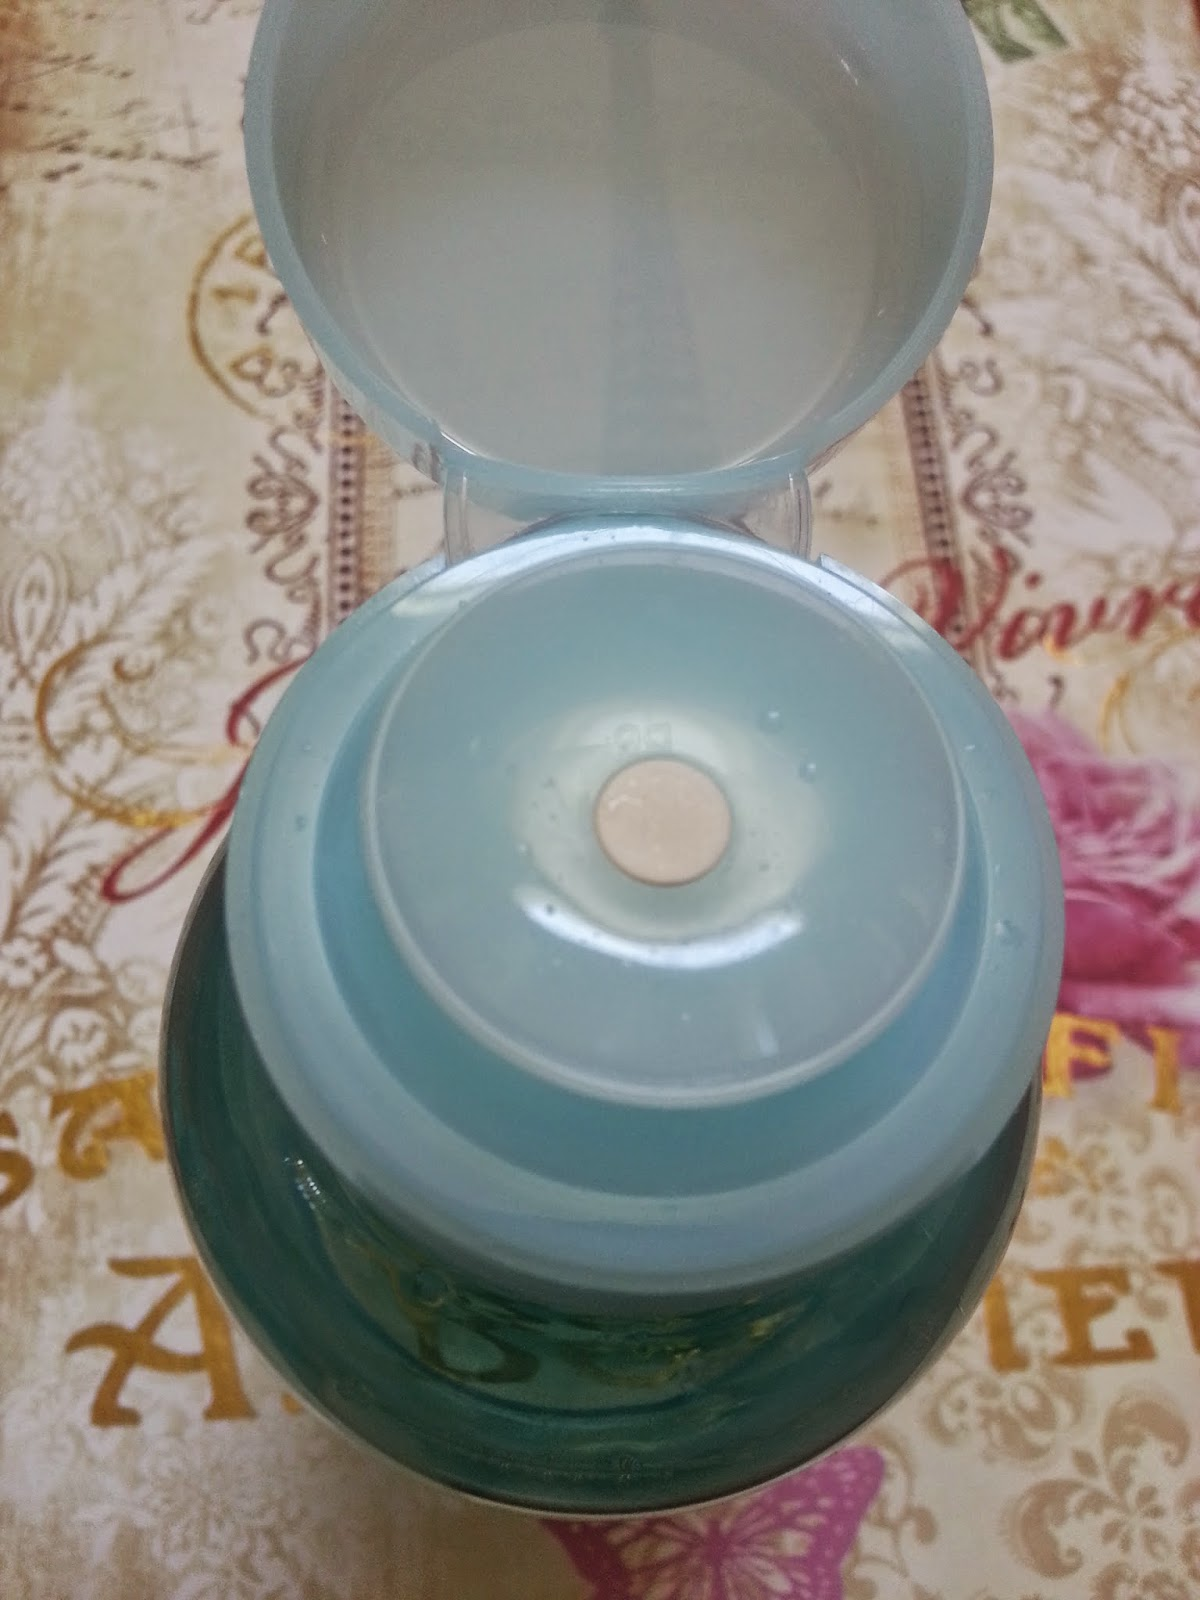 Etude House Wonder Pore Freshner Pump